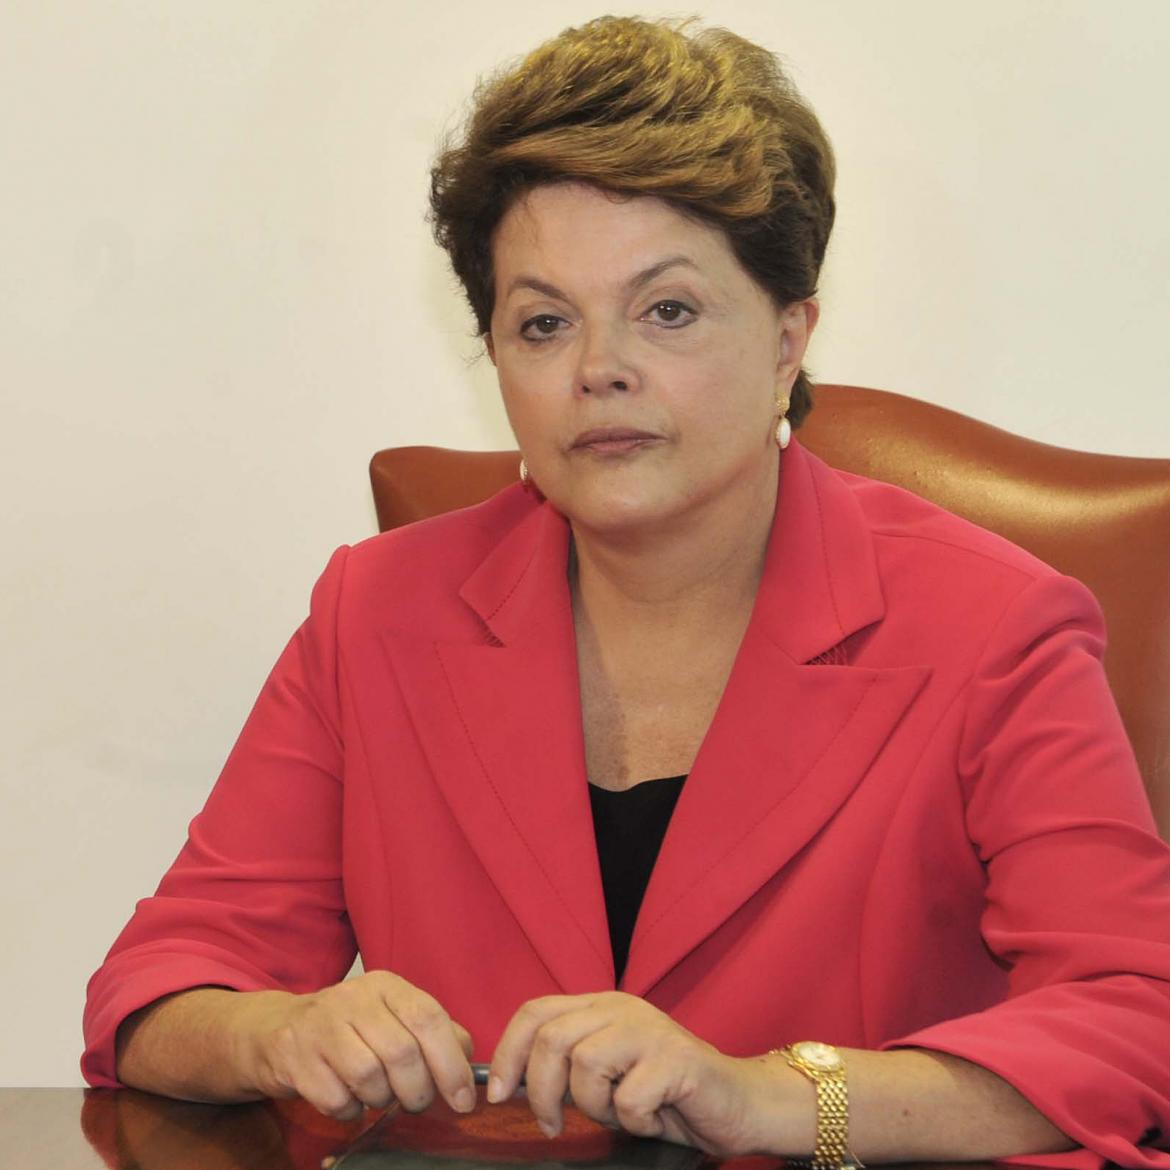 http://www.4newsmagazine.com.br/sites/default/files/dilma_1.jpg